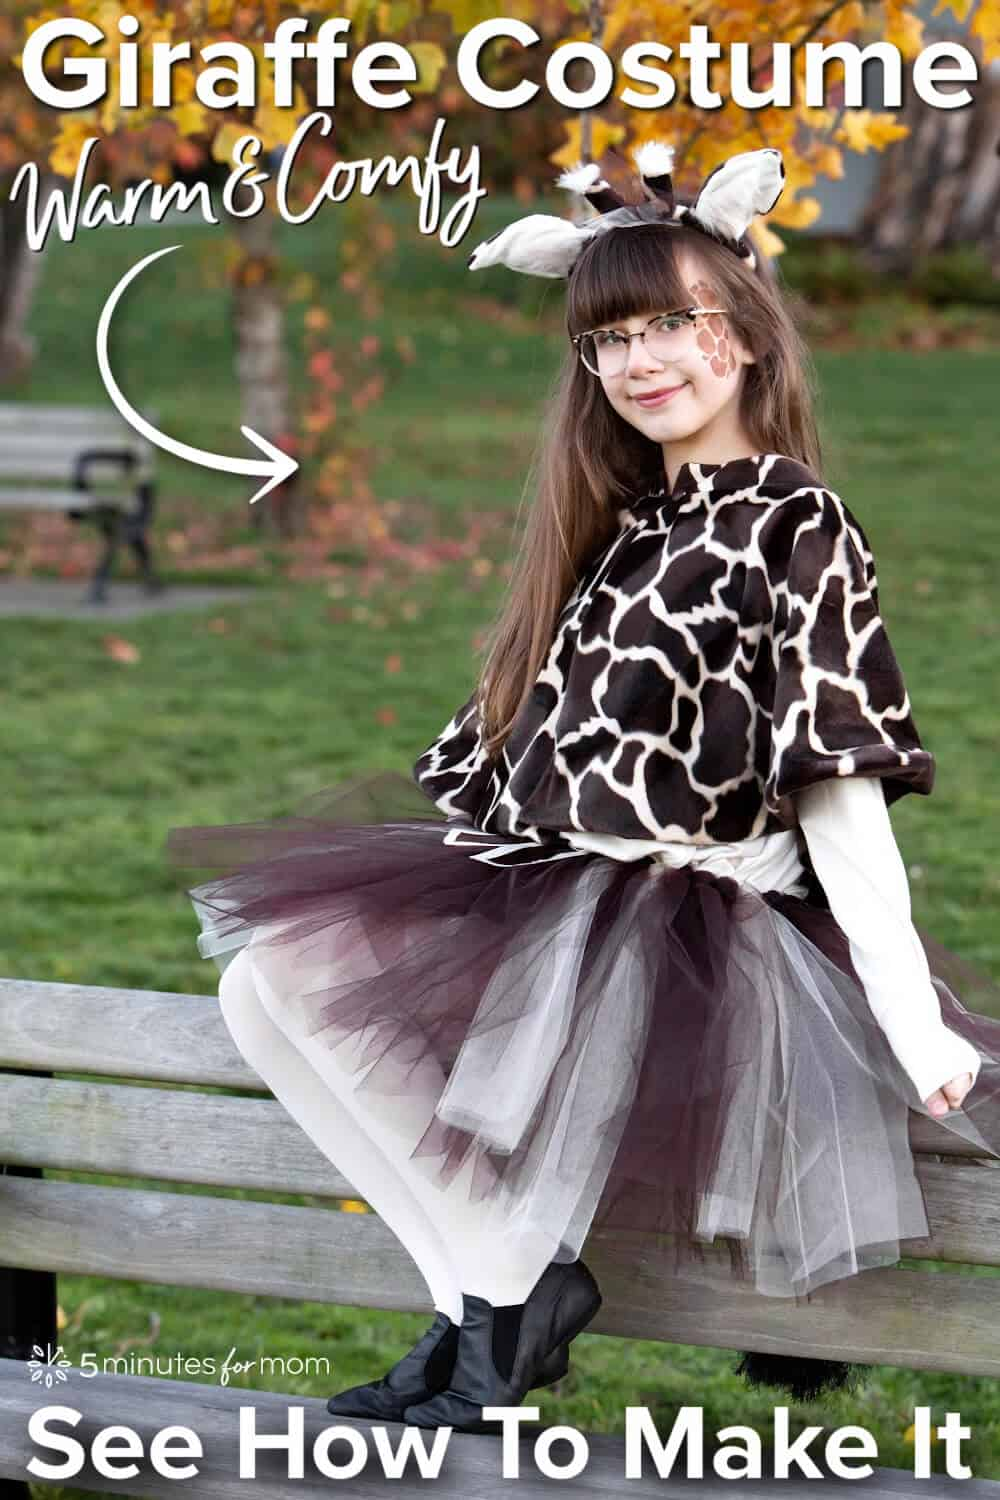 """Girl sitting on a park bench in a homemade giraffe costume - Text on photo says """"Giraffe Costume - Warm and Cozy - See How To Make It"""""""